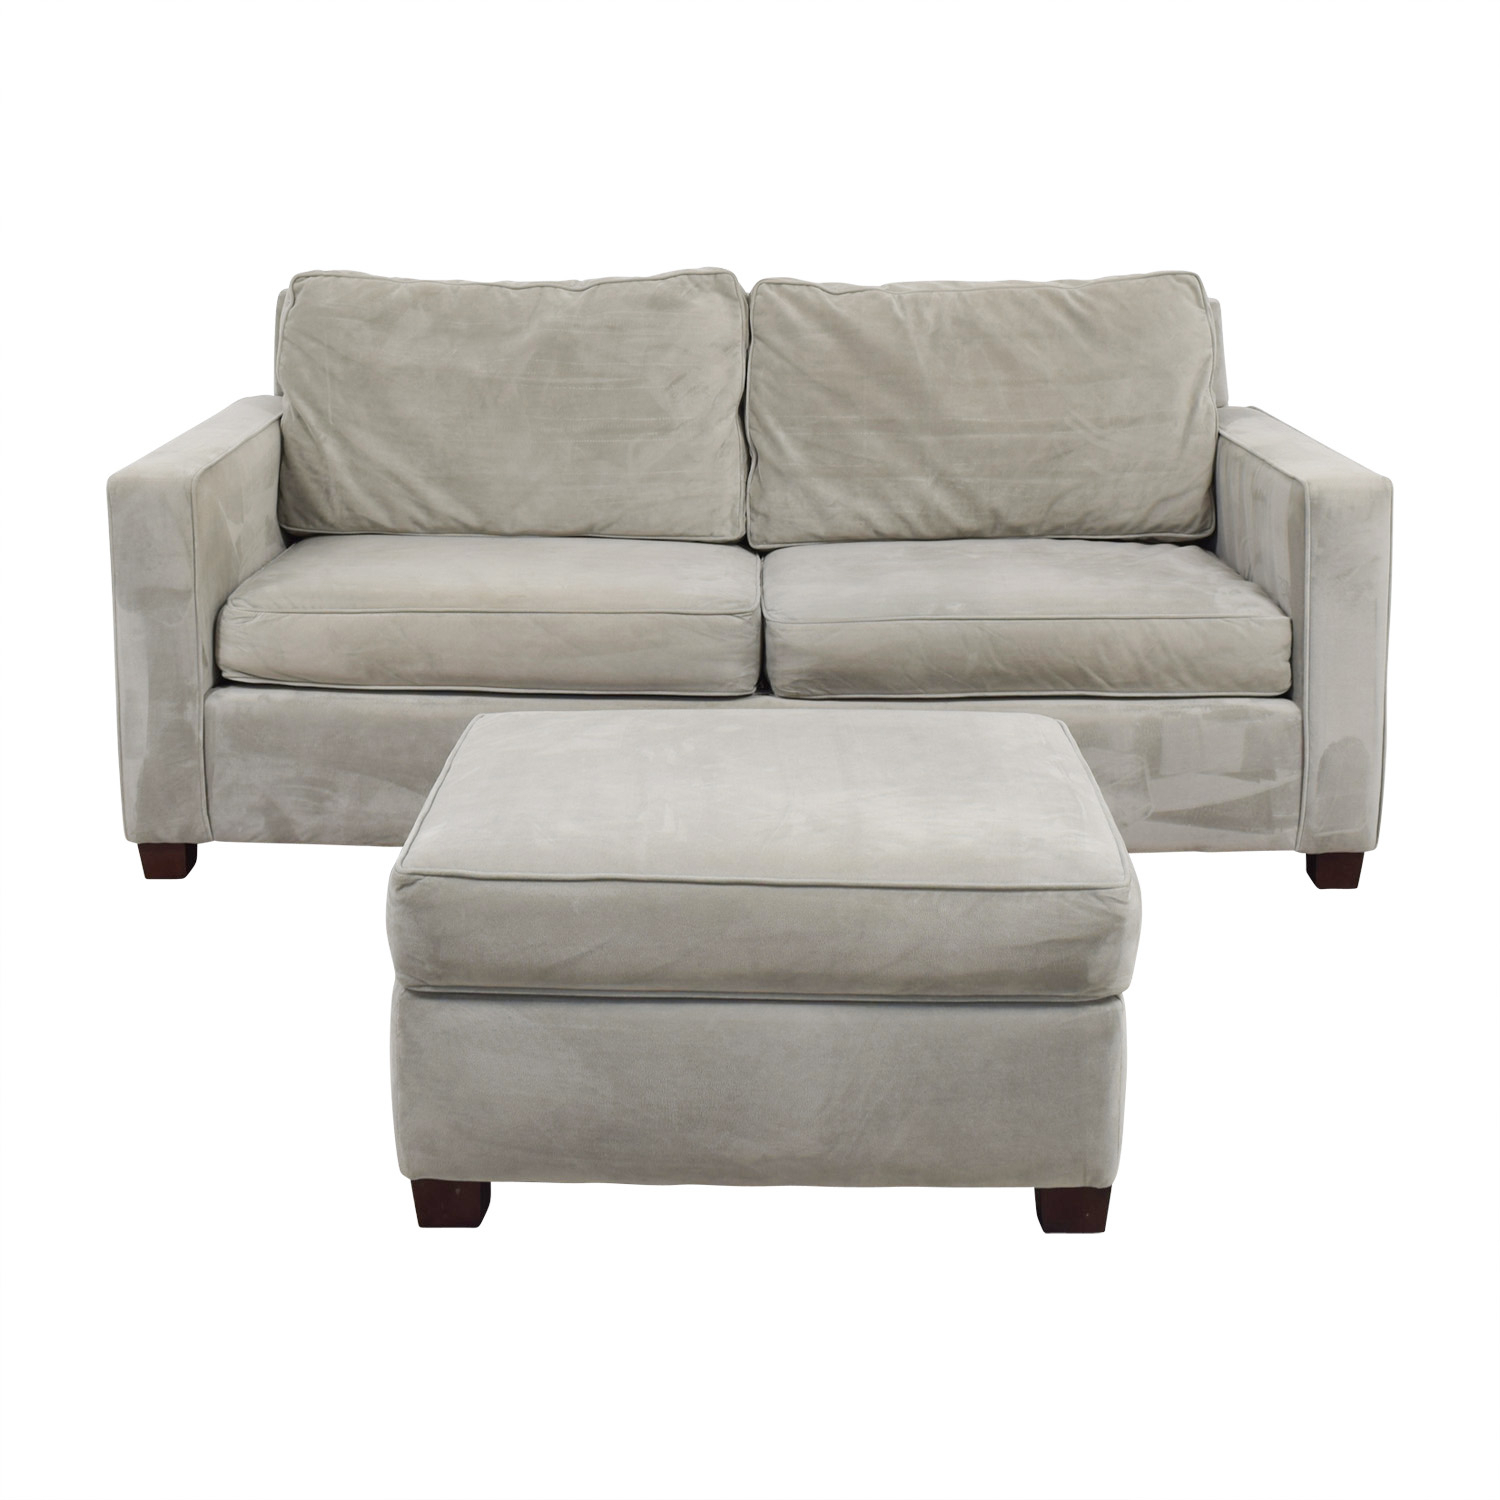 52% Off – West Elm West Elm Gray Henry Sofa And Ottoman / Sofas Throughout Elm Sofa Chairs (Photo 6 of 25)